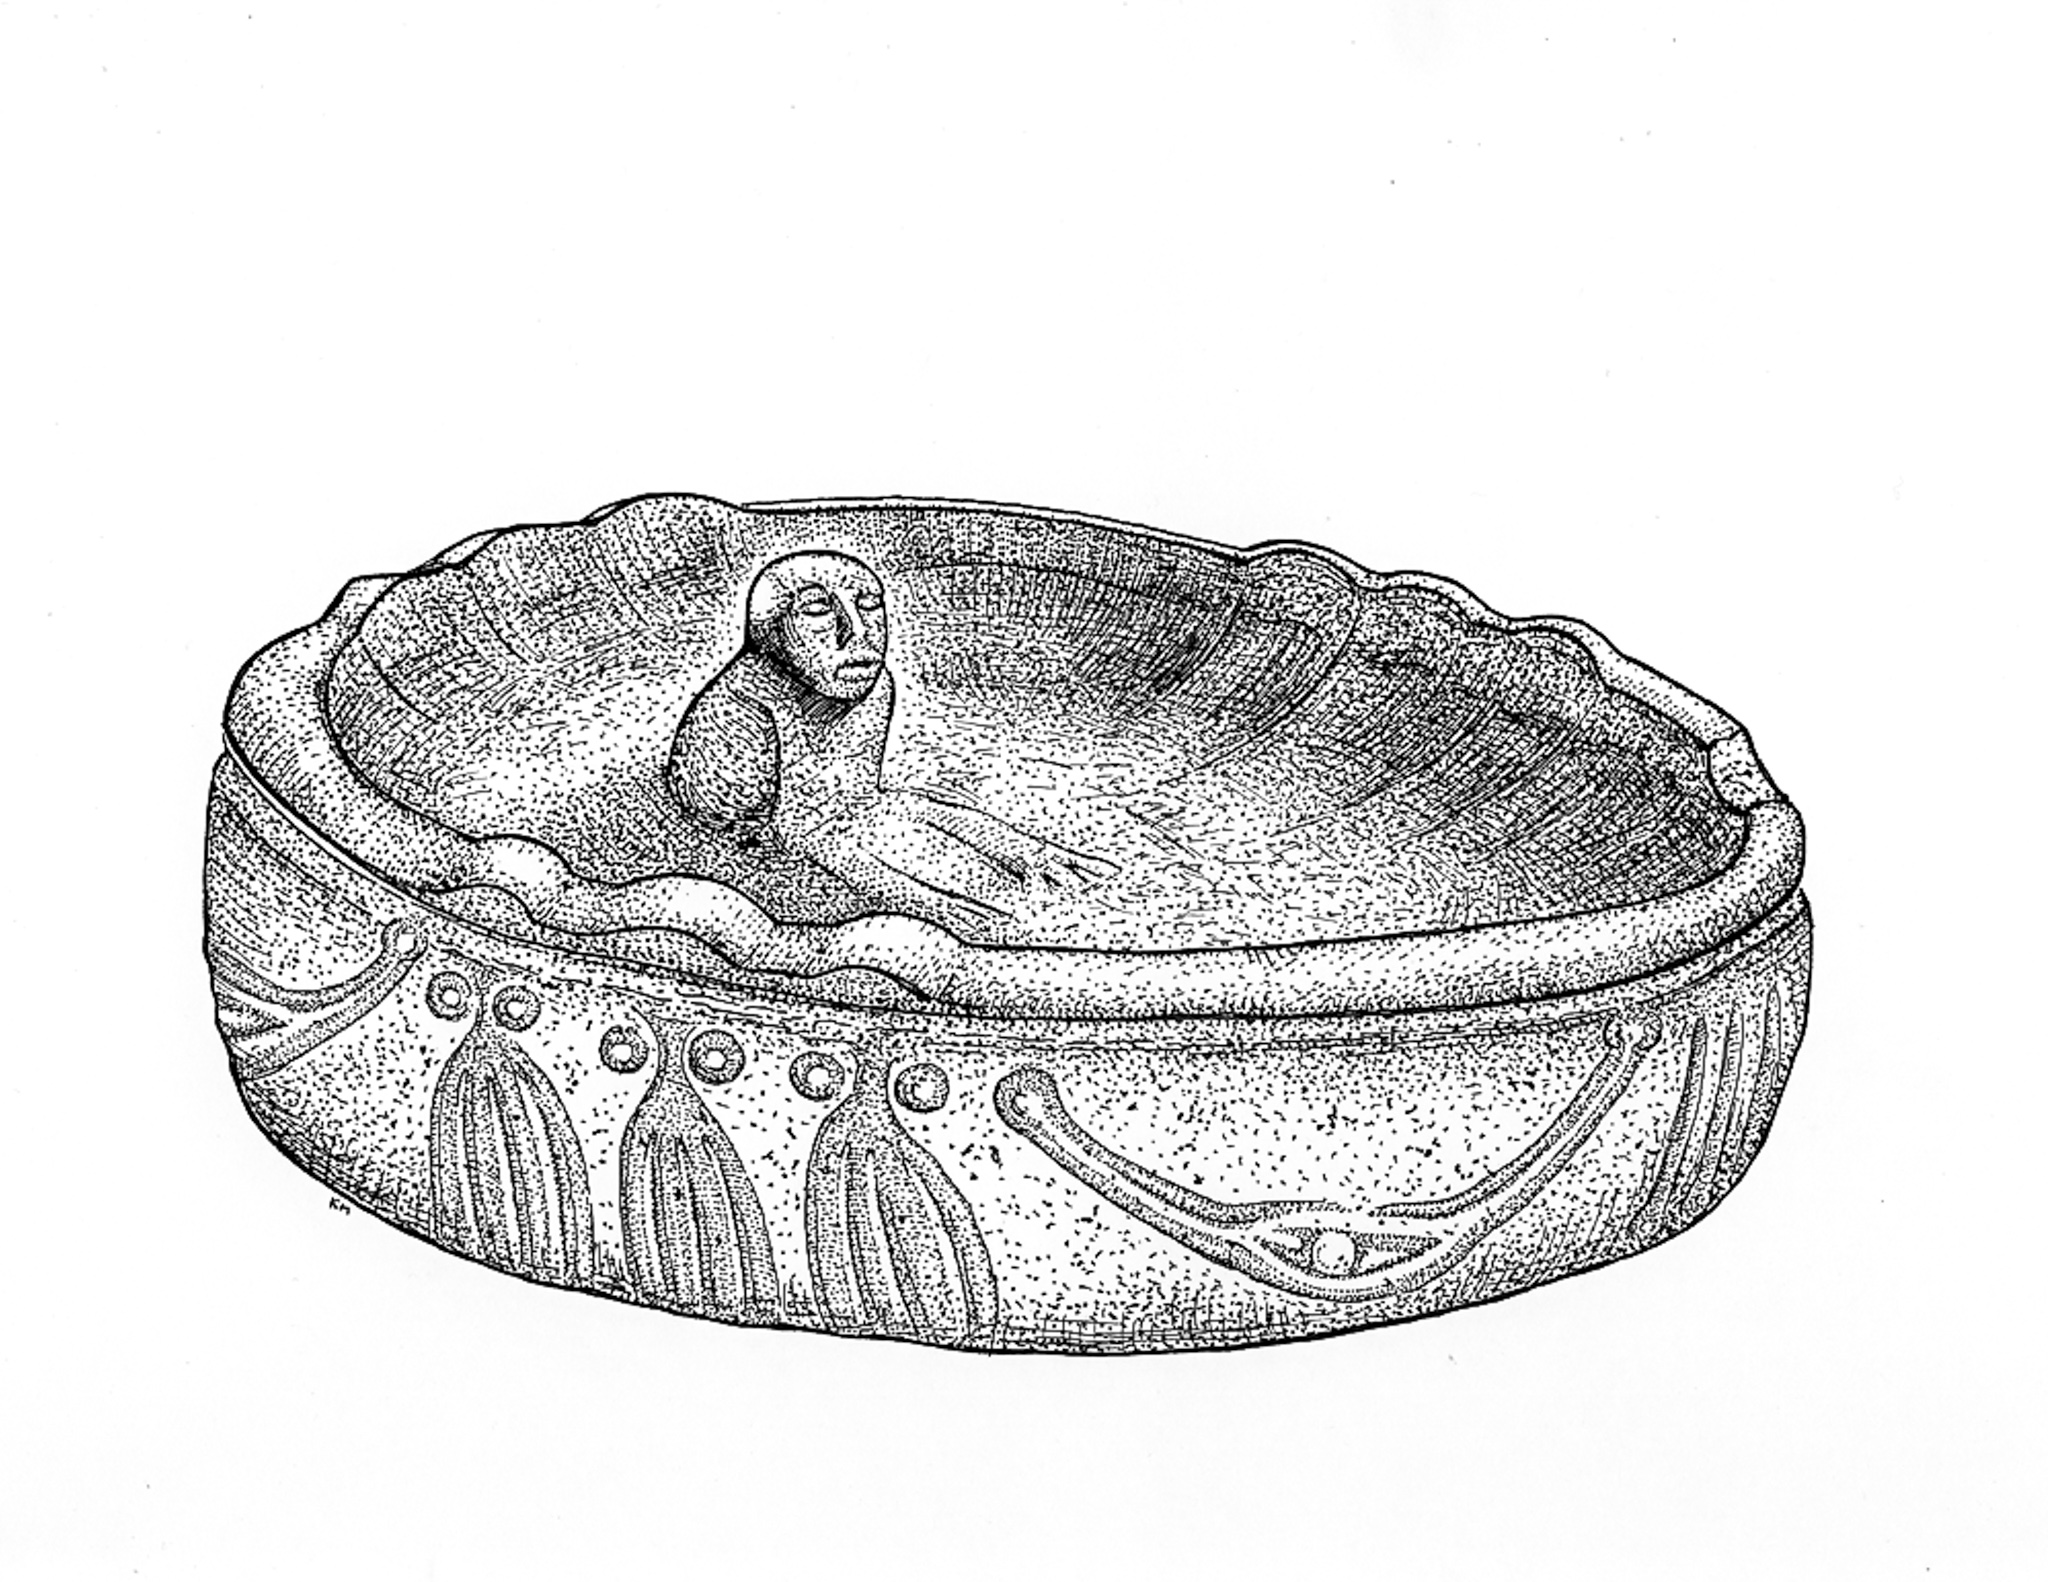 Stone Oil Lamp drawing